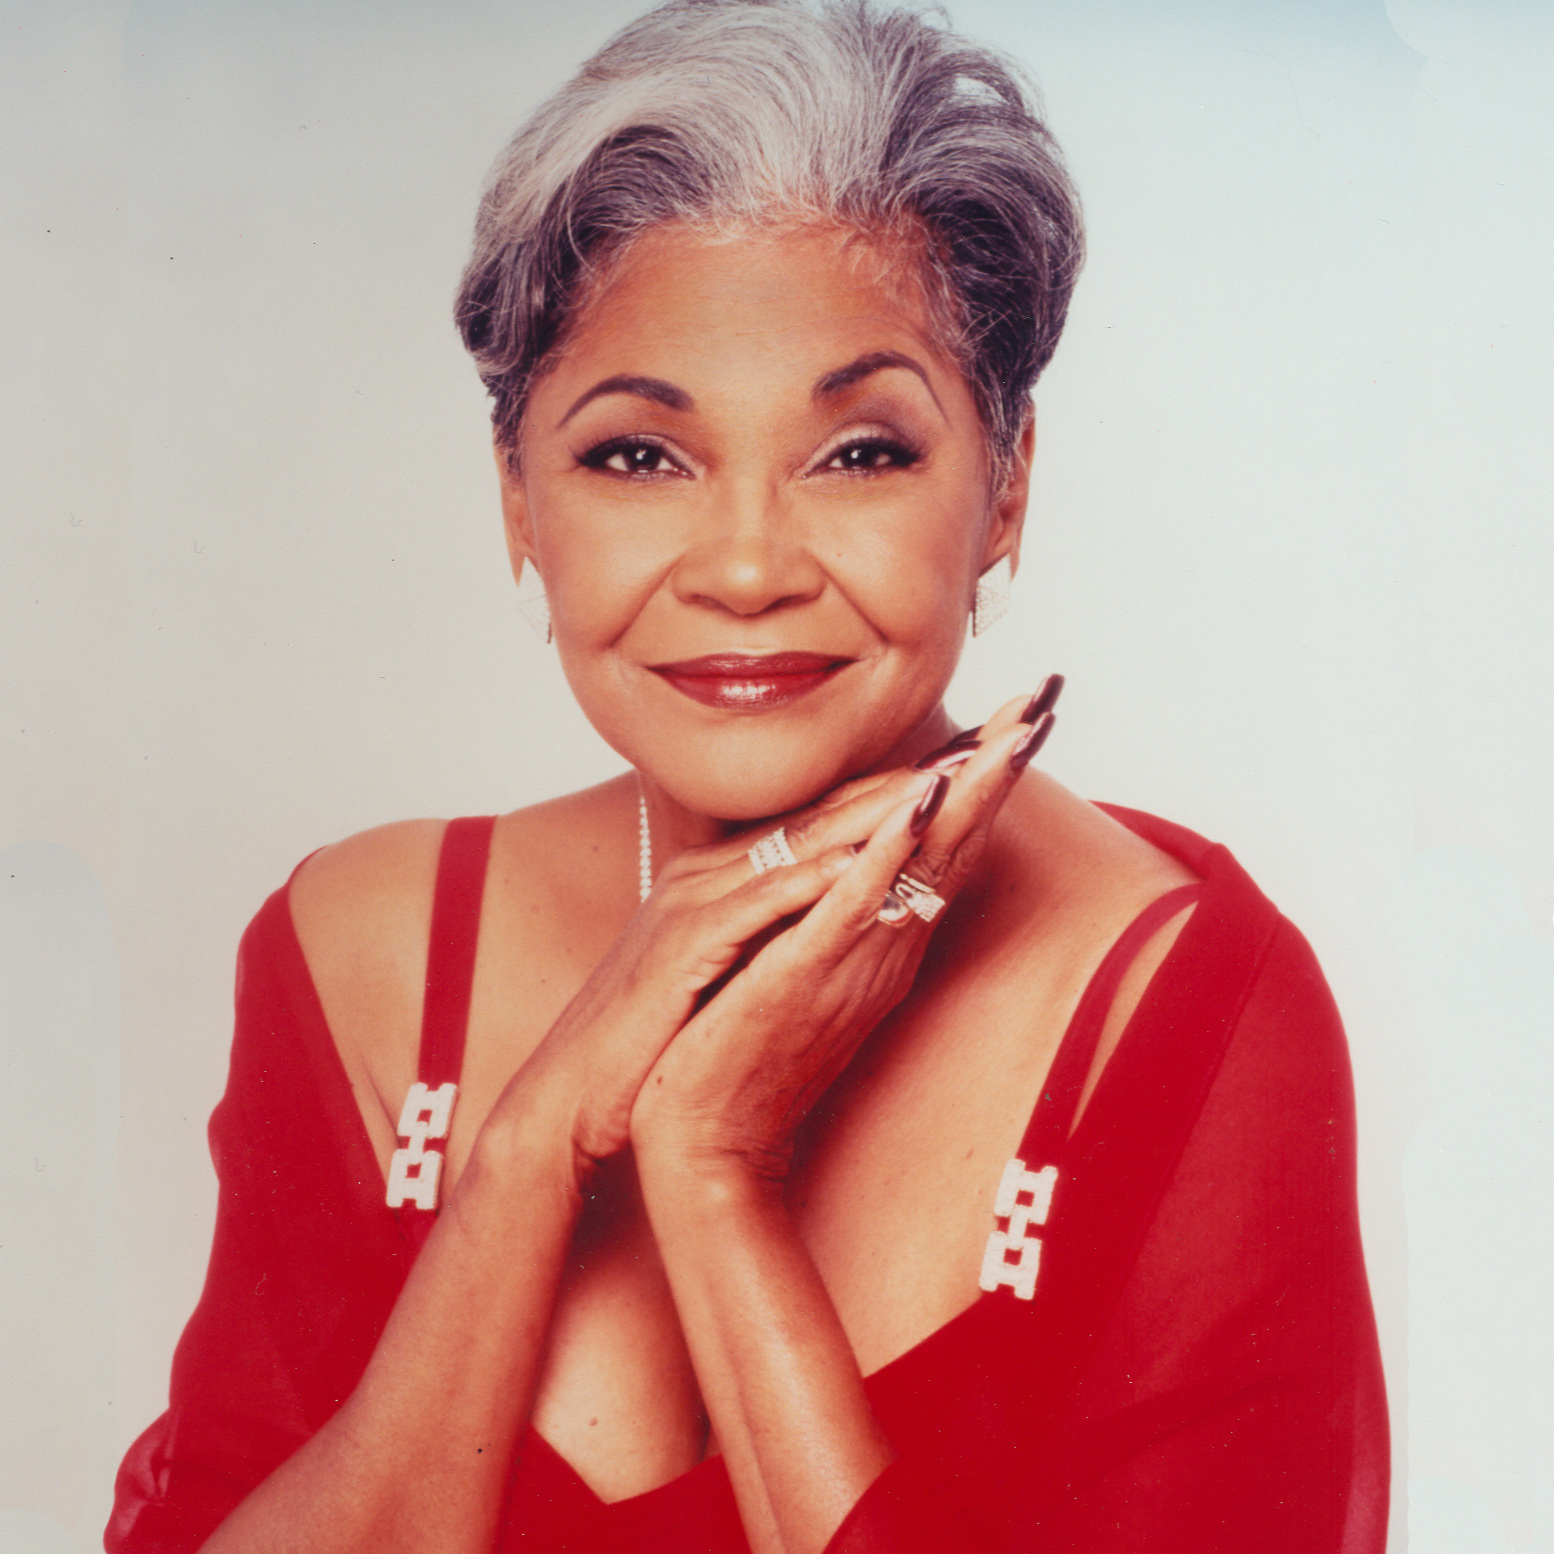 Nancy Wilson Jazz Singer Pictures and Photos Getty Images Photos of nancy wilson